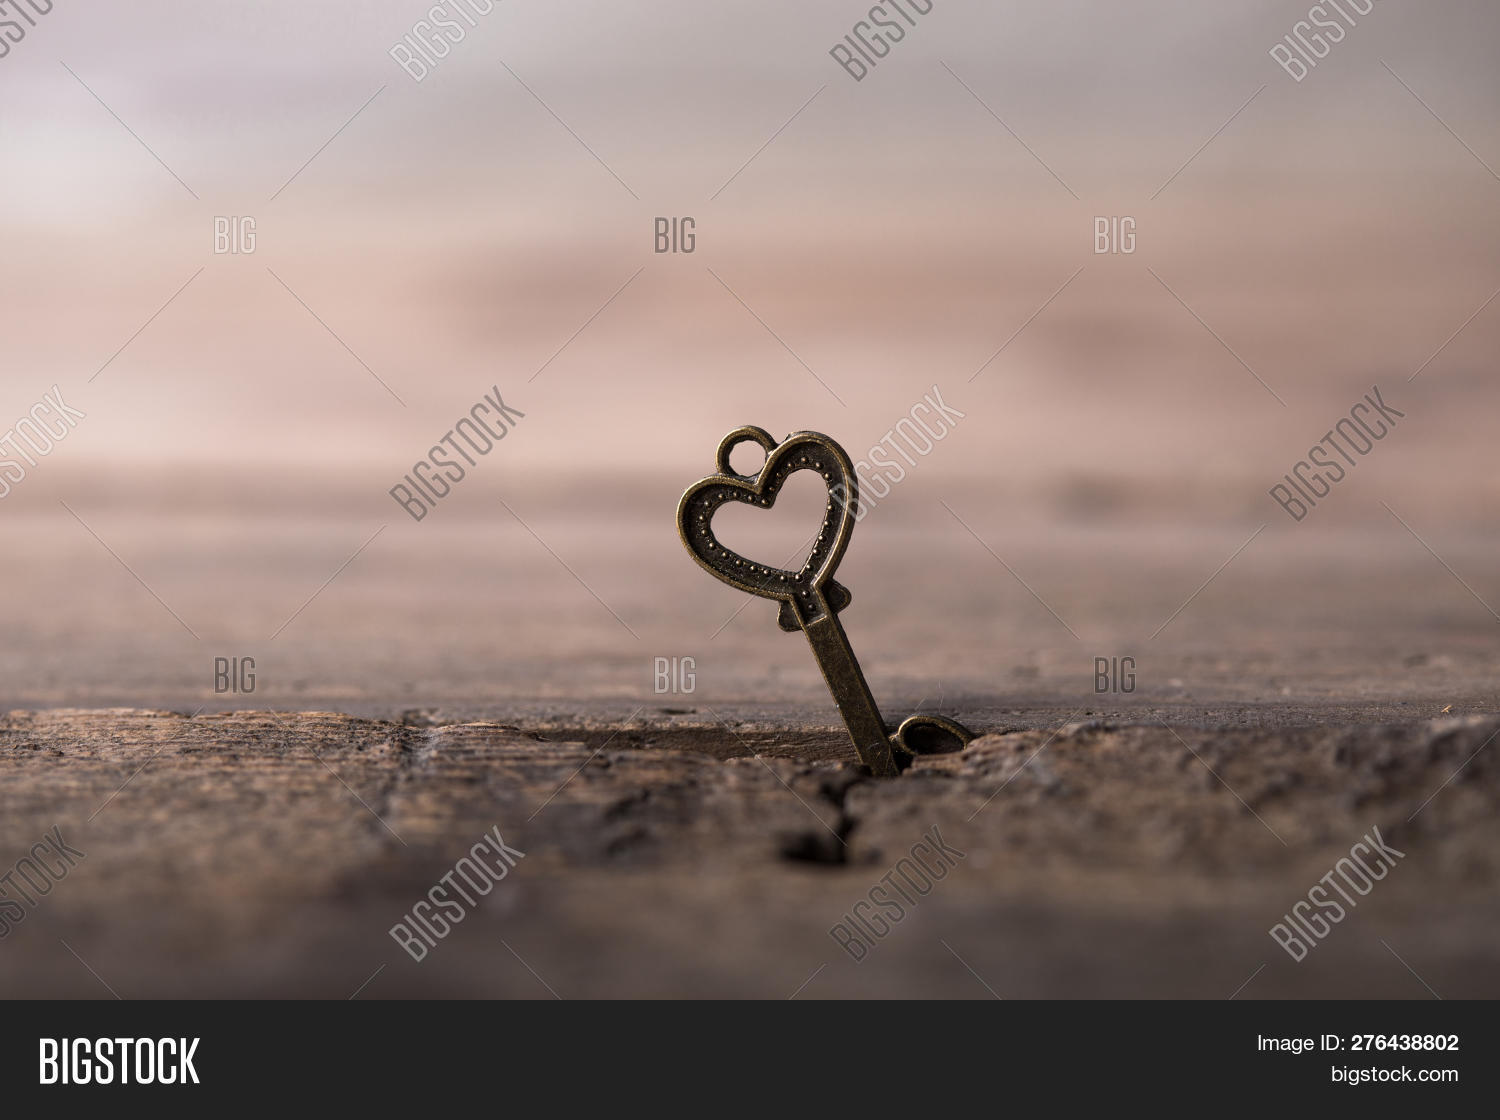 14,aged,background,beautiful,celebration,closeup,concept,copy,day,decoration,design,gift,gold,golden,heart,holiday,isolated,key,lock,love,marriage,married,metal,nobody,object,old,open,passion,protection,red,relationship,retro,romance,romantic,rusty,safety,security,shape,space,spirituality,symbol,texture,unlock,valentine,vintage,wedding,white,wood,yellow